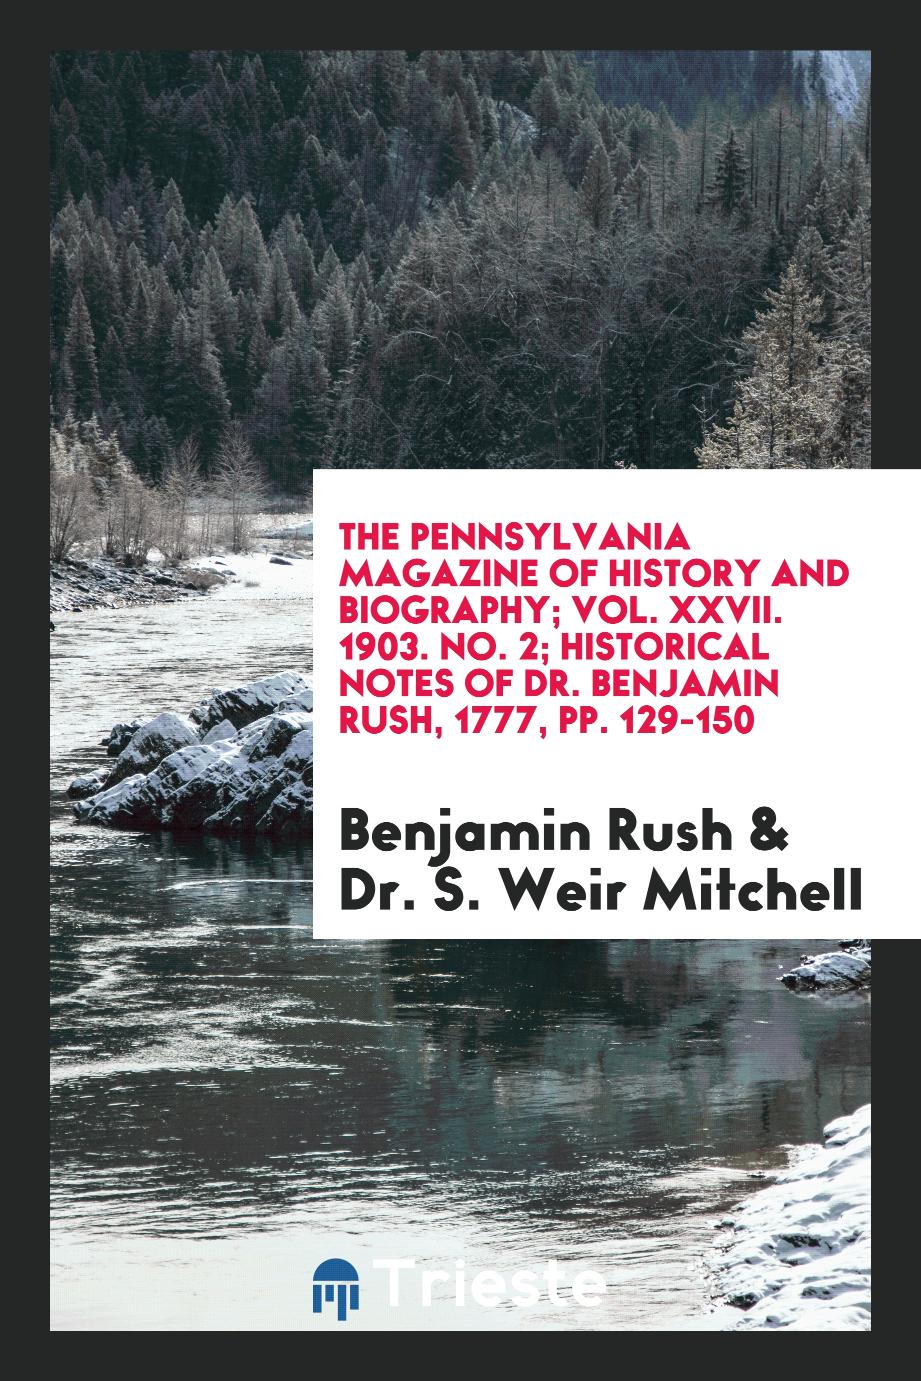 The Pennsylvania Magazine of History and Biography; Vol. XXVII. 1903. No. 2; Historical Notes of Dr. Benjamin Rush, 1777, pp. 129-150